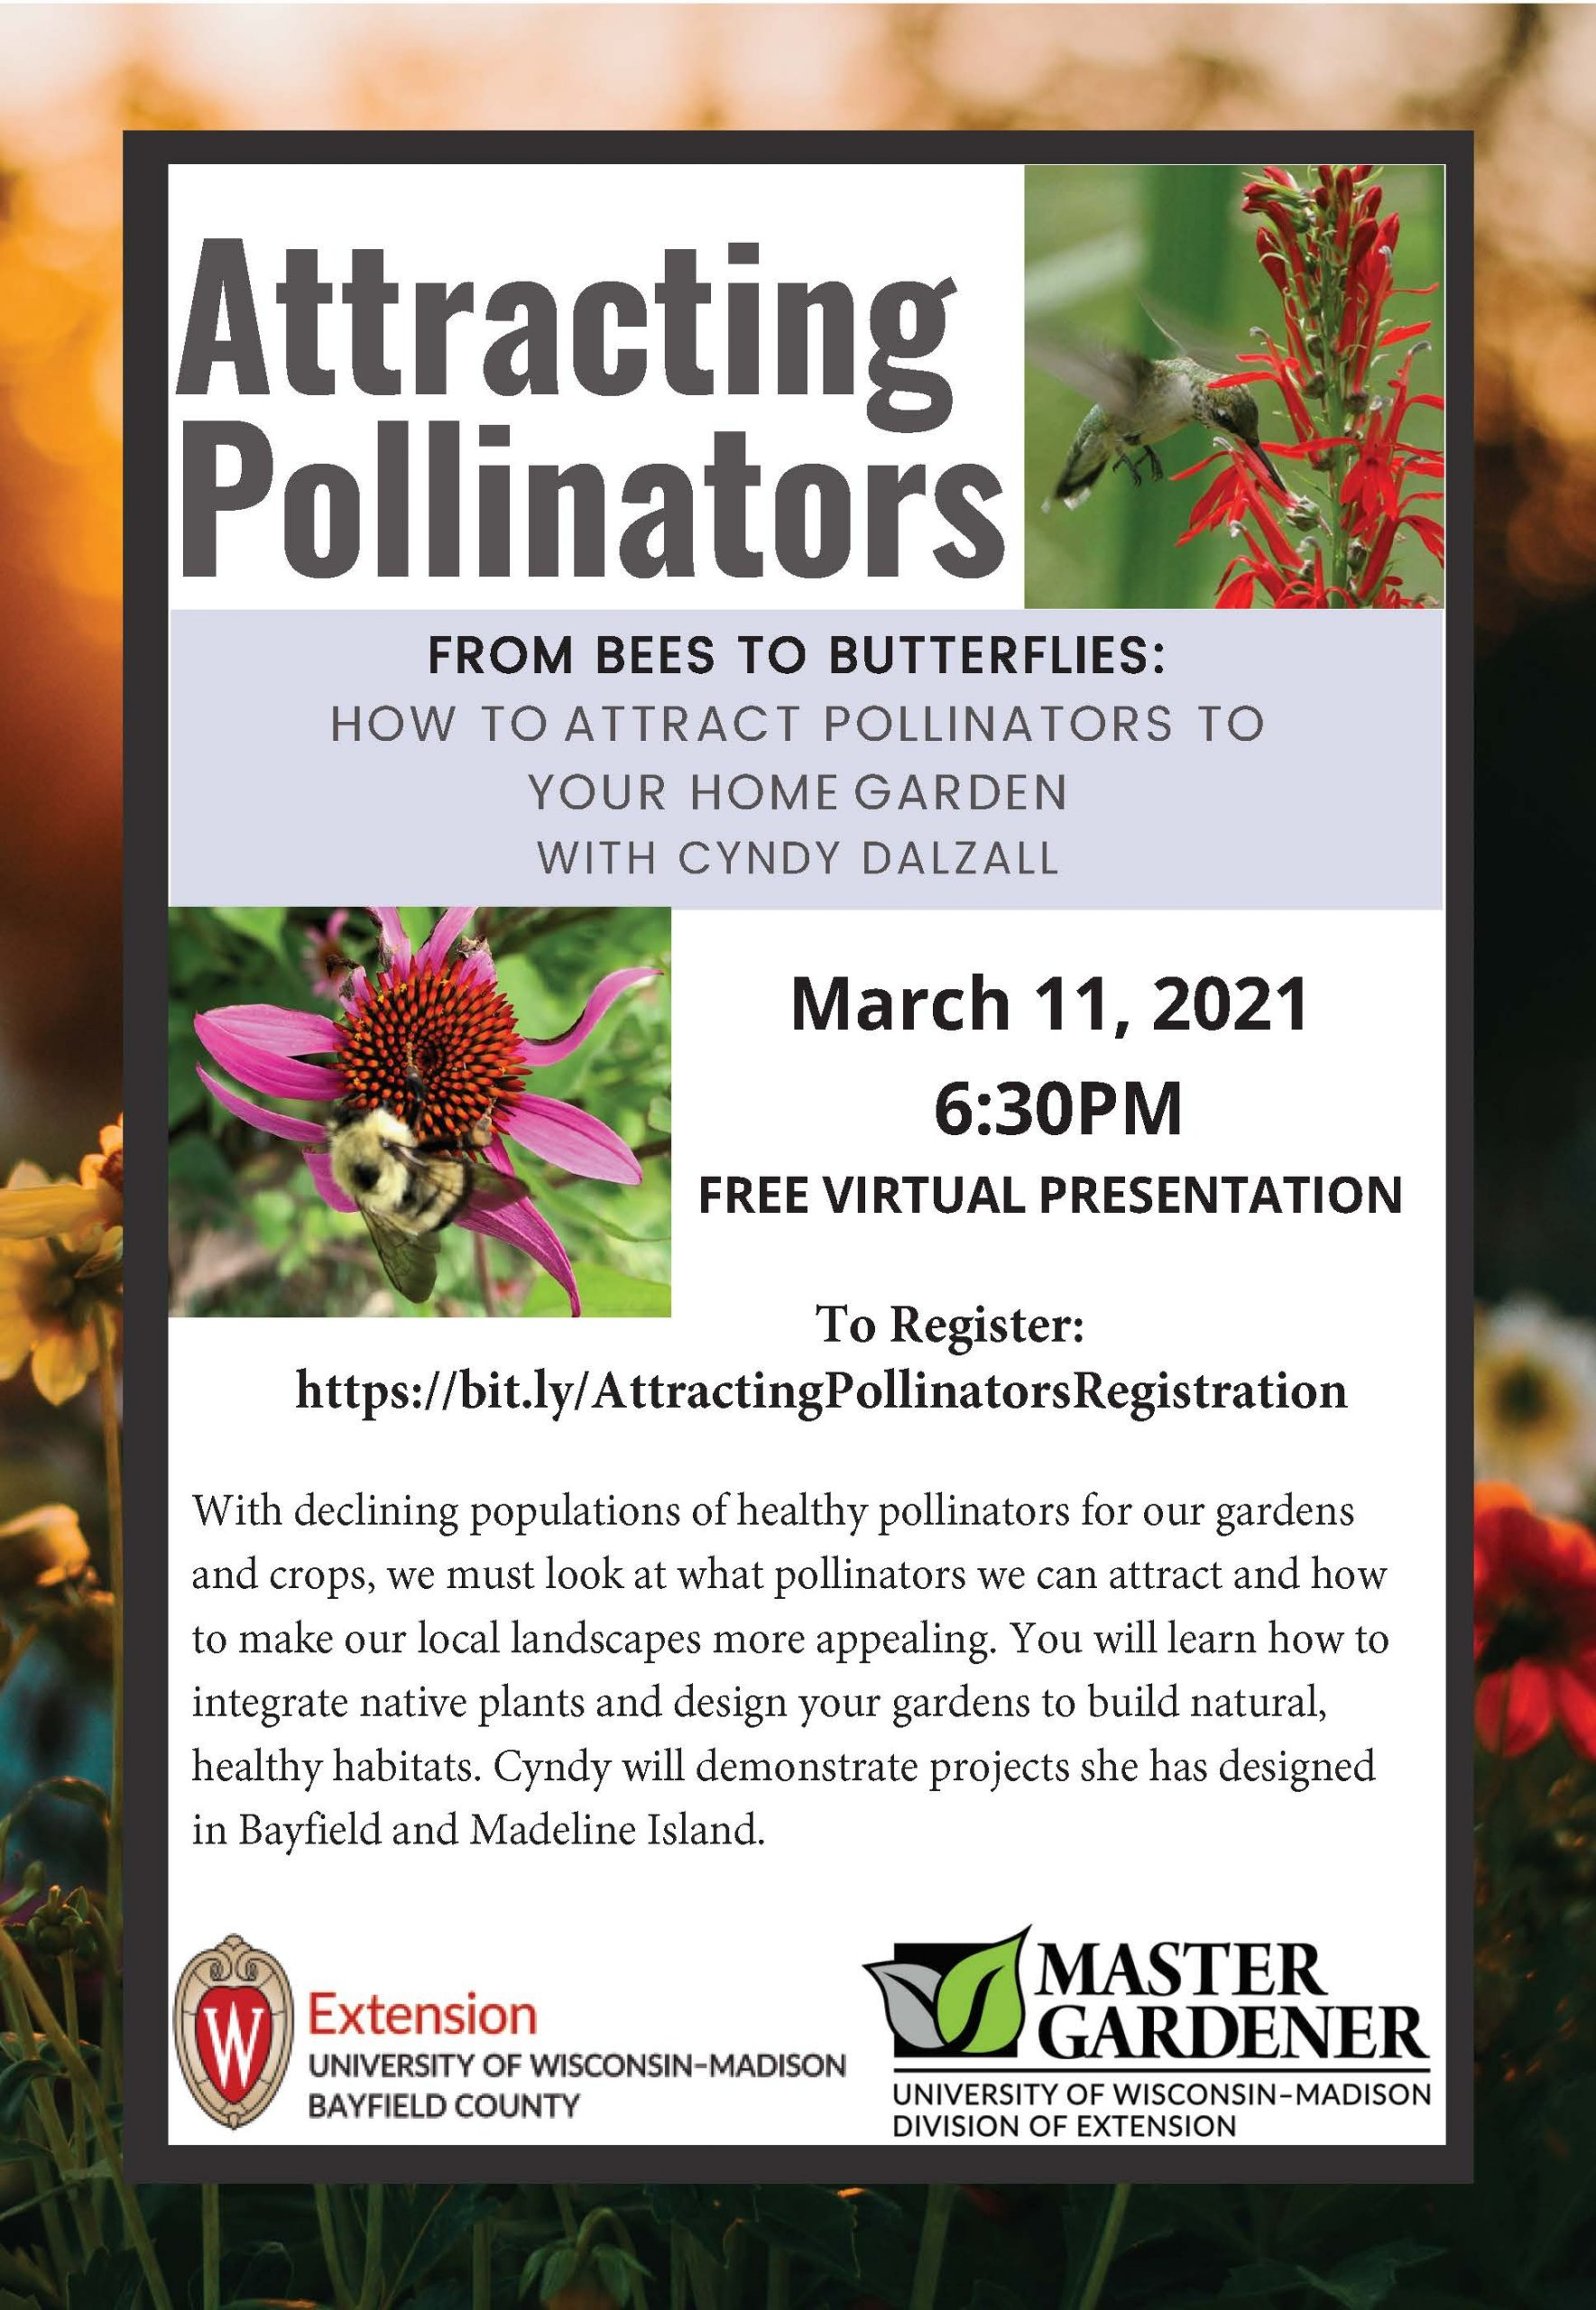 Attracting Pollinators with Cyndy Dalzall